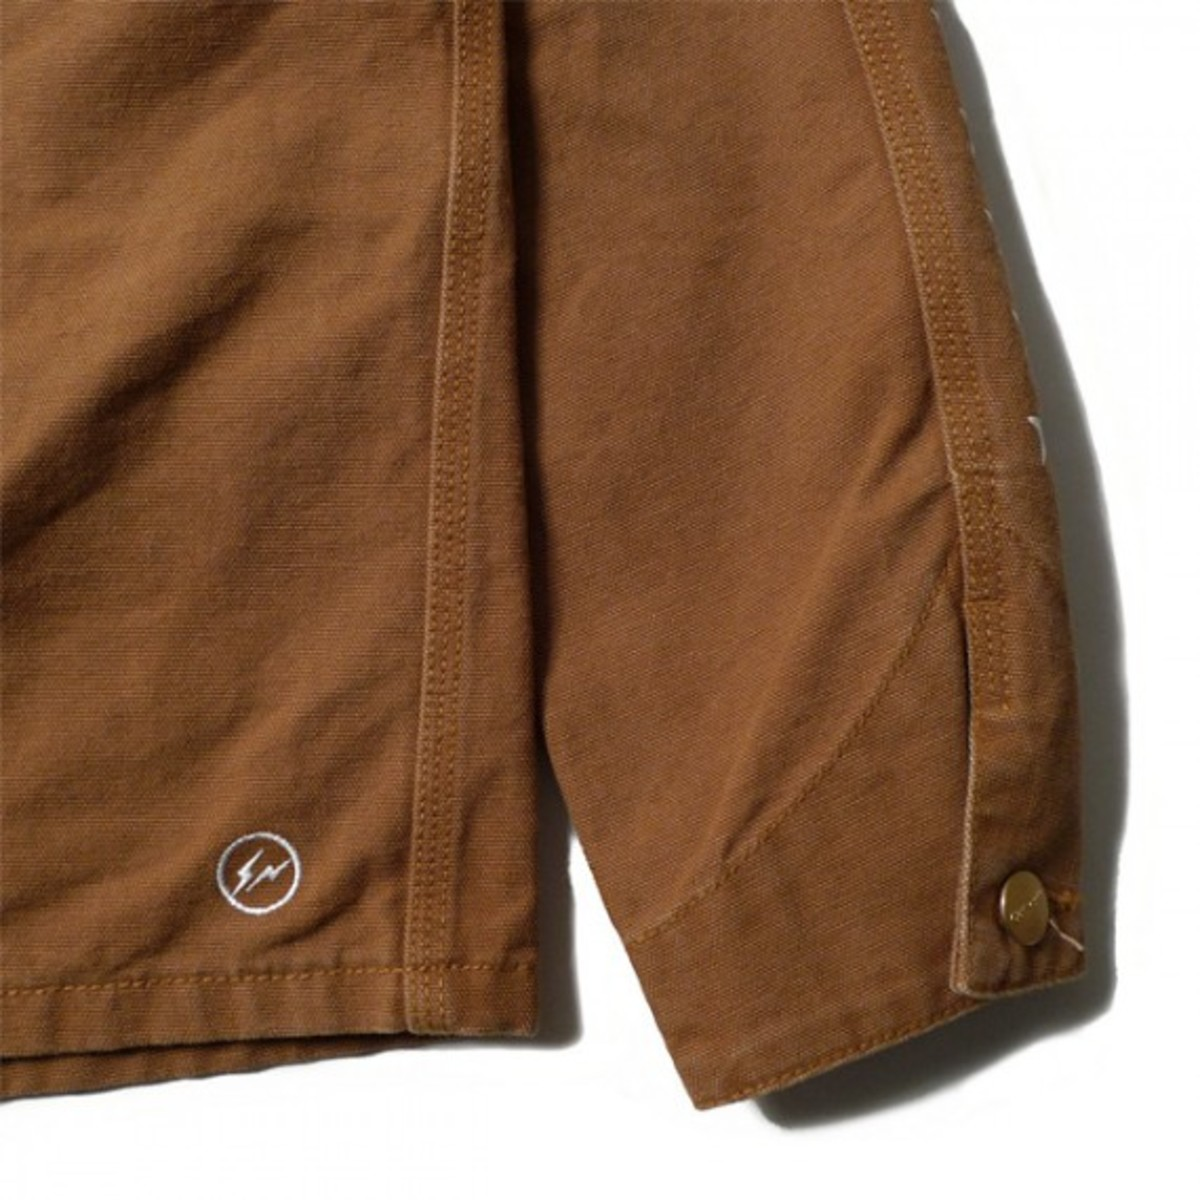 uniform-experiment-carhartt-hunting-jacket-brown-06